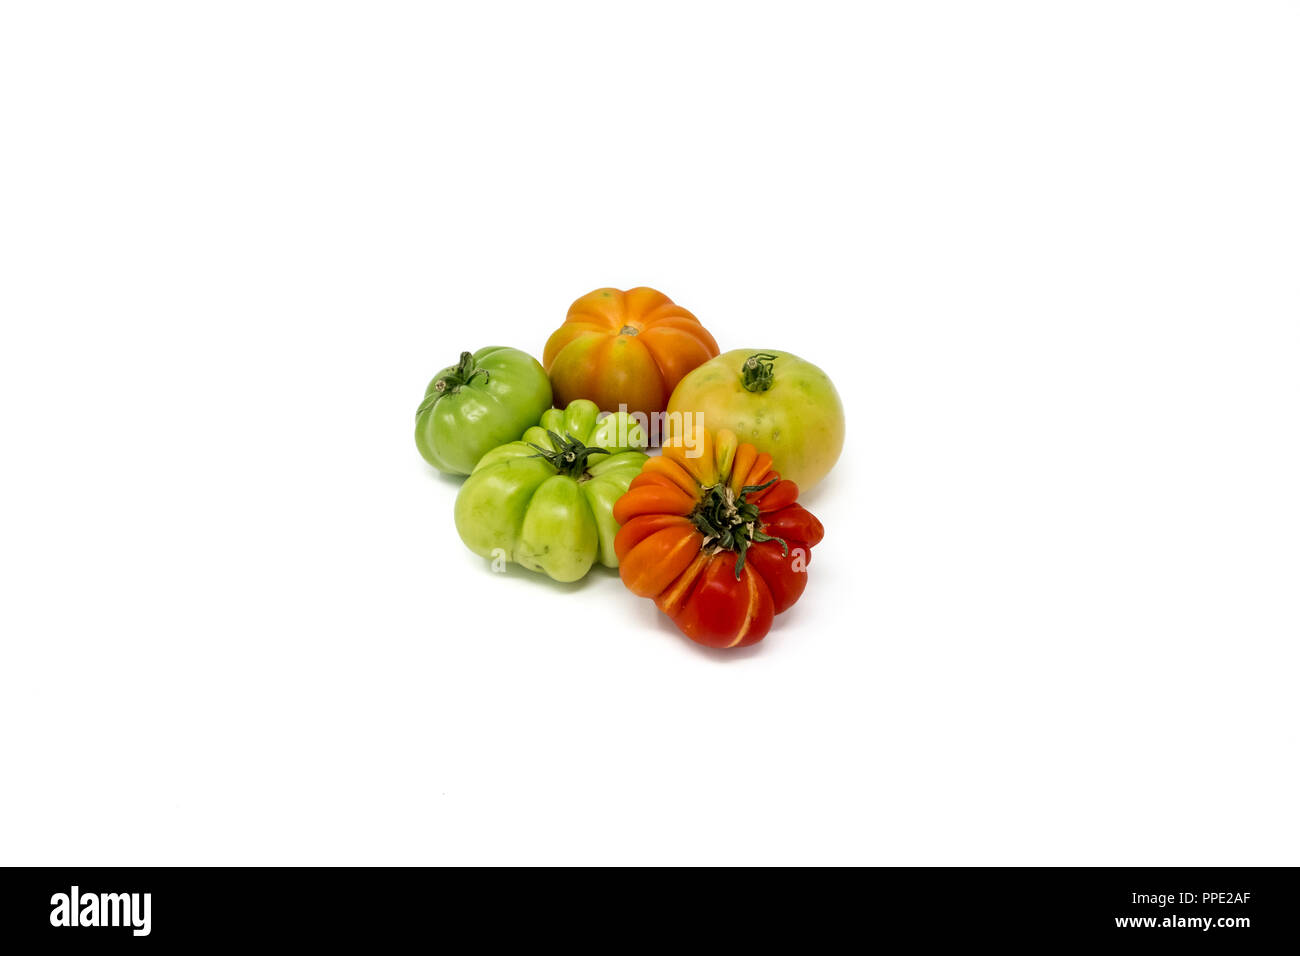 A variety of imperfect, ripening heirloom or heritage tomatoes in a studio setting - Stock Image